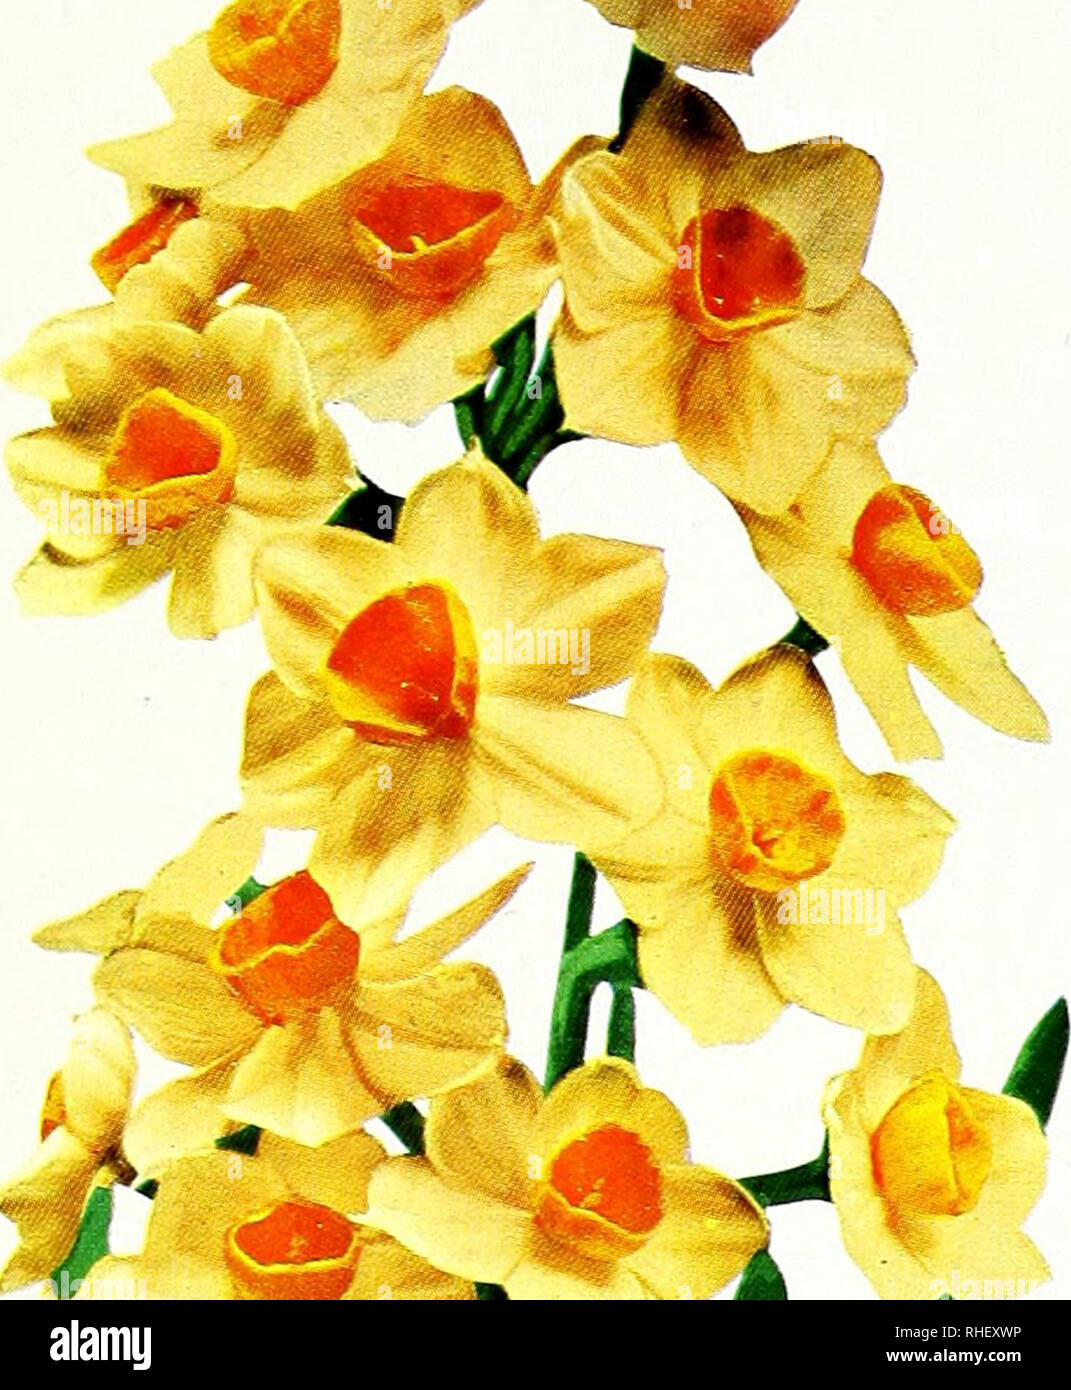 ". Bolgiano's fall 1969. Nurseries (Horticulture) Catalogs; Bulbs (Plants) Catalogs; Seeds Catalogs; Trees Catalogs. FOR COLORFUL SPRING GARDENS—PLANT Va^^odiU THIS FALL. JbJ# GRAND SOLEIL D'OR Bulbs For Indoor Culture Paper-White Narcissus. Dishes of these, grown in pebbles and water, can be had in bloom con- tinuously from Thanksgiving until Easter. 3 for 65c.; S2.30 per doz.; S17.25 per 100. Grand Soieil d'Or. ""Yellow Paper-White"" with deep orange cup. Fragrant. Treat the same as the regular Paper-Whites. 3 for SI.00; S3.65 per doz.;S27.00perl00. Chinese Sacred Lily. Flowers in clu - Stock Image"